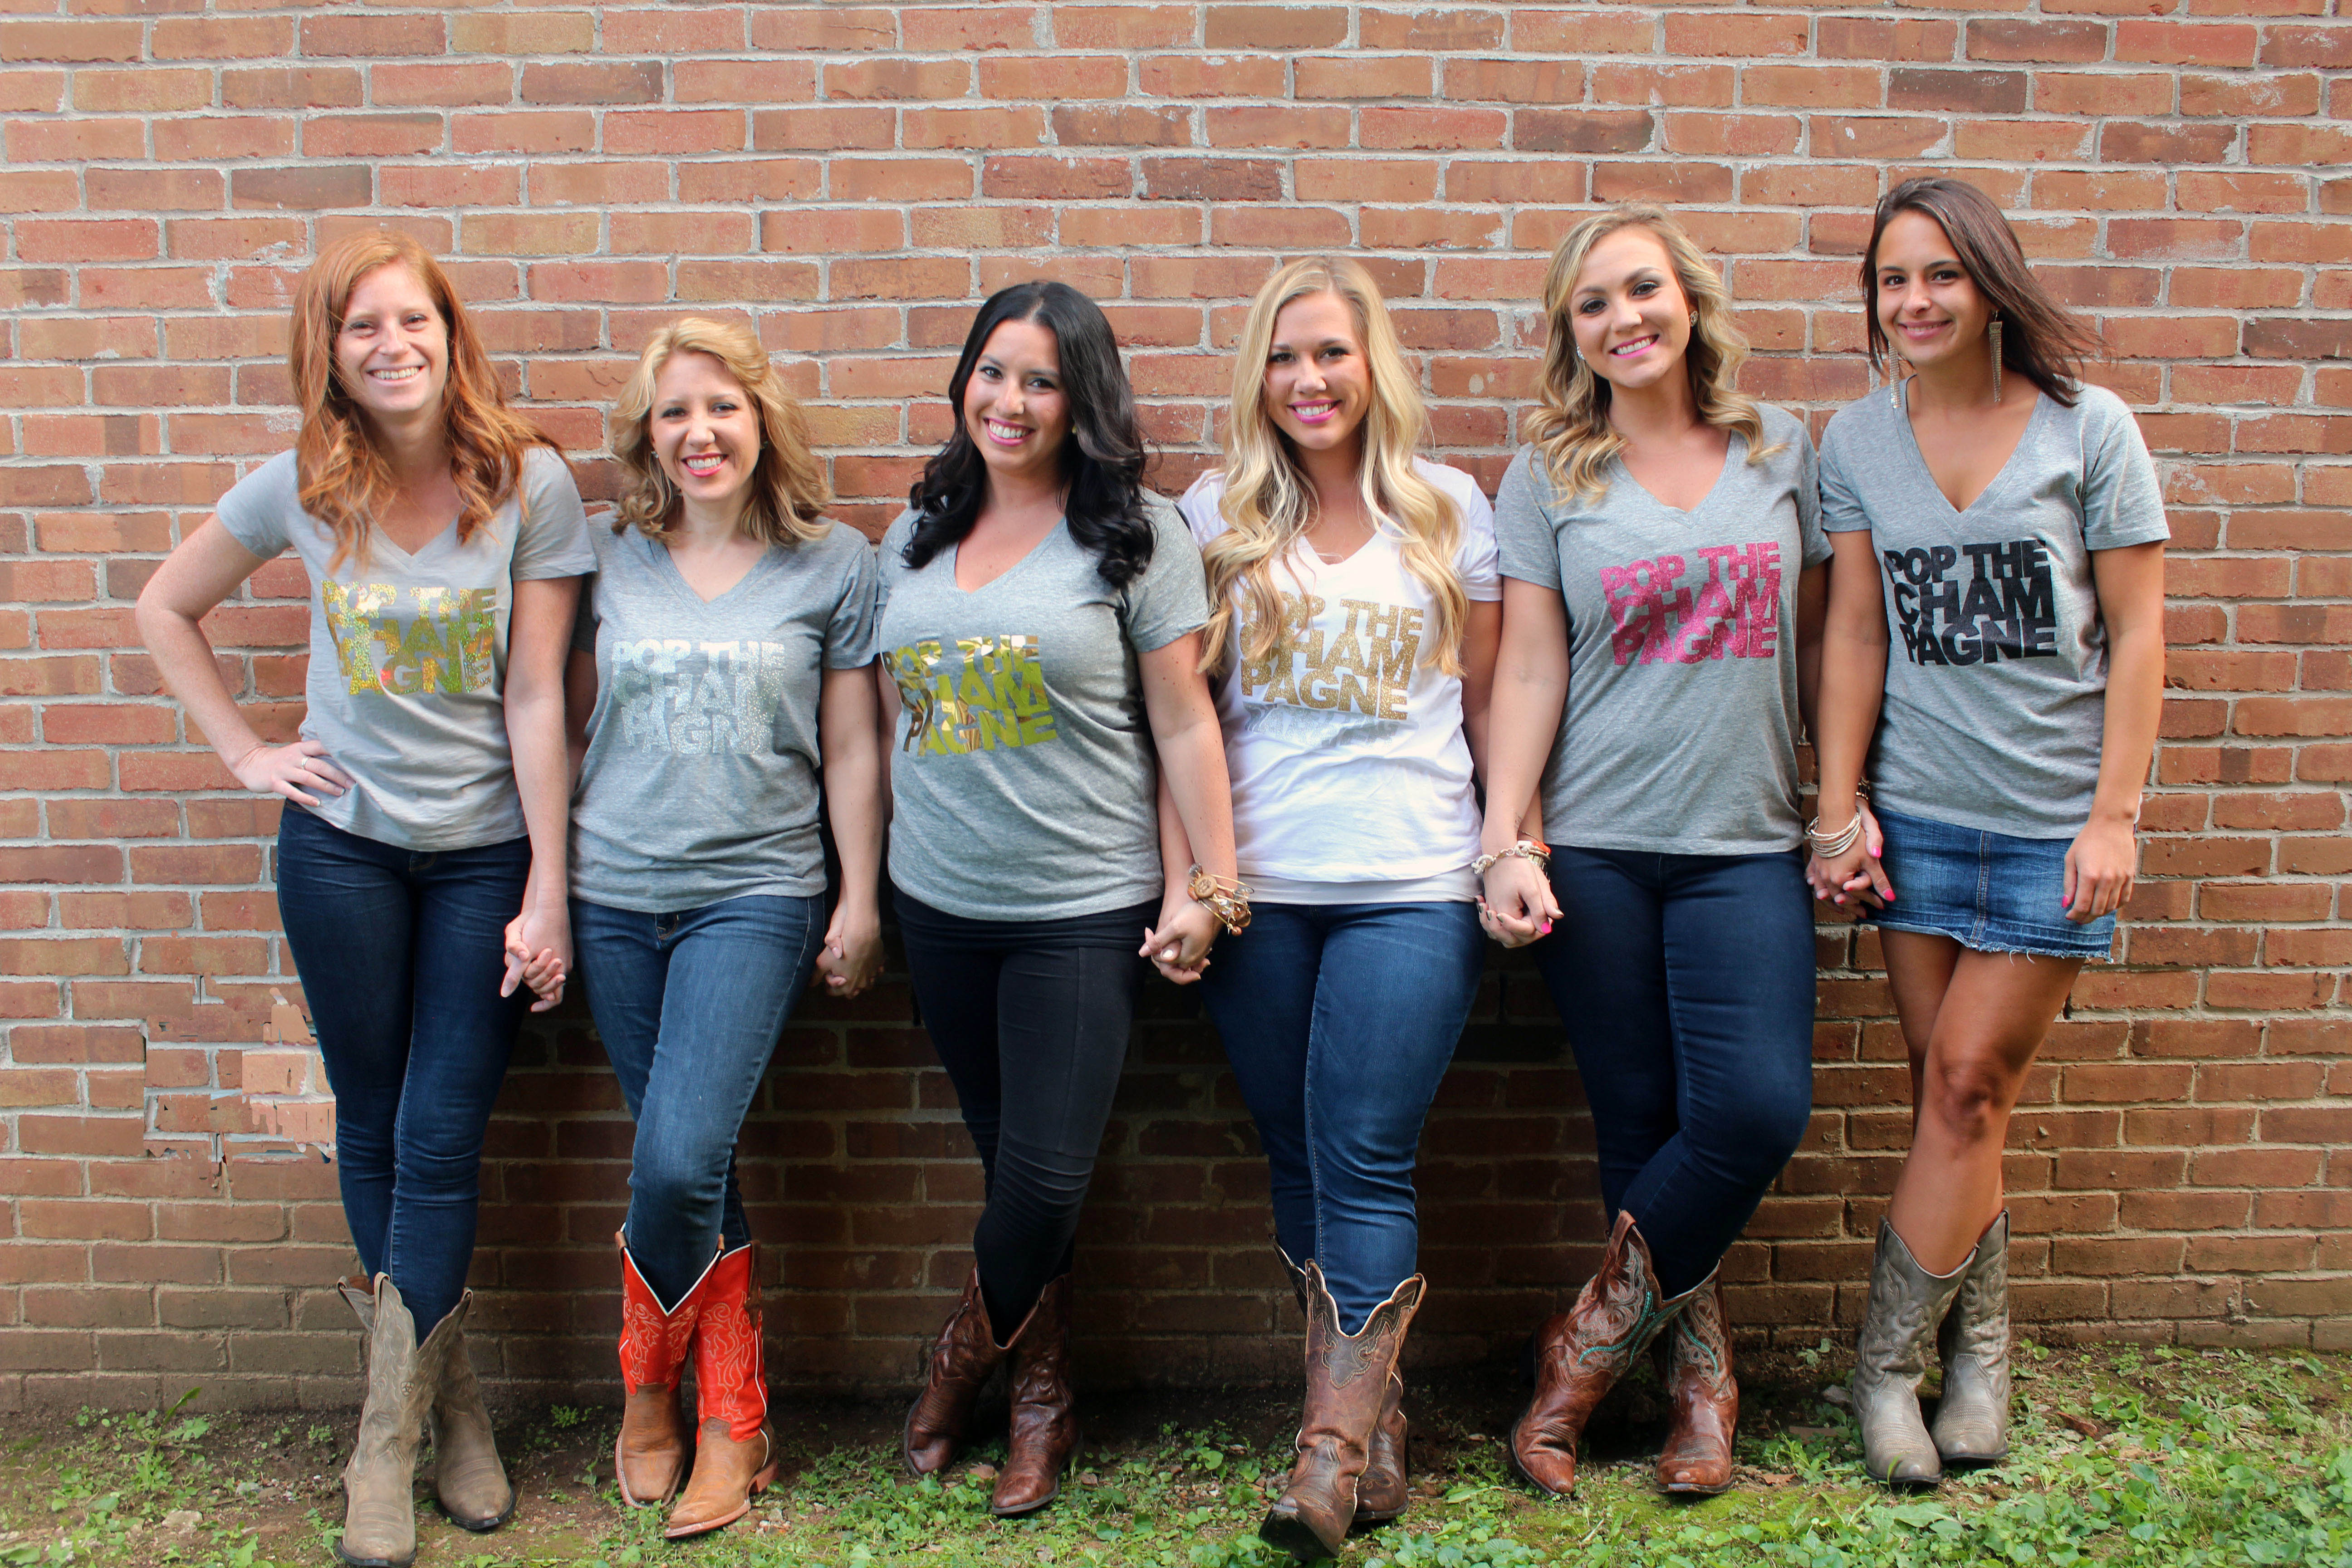 tennessee girls Connect with tennessee singles near you for online dating, flirting or relationship create your free dating profile now and find your soulmate in tn, tennessee flirt.